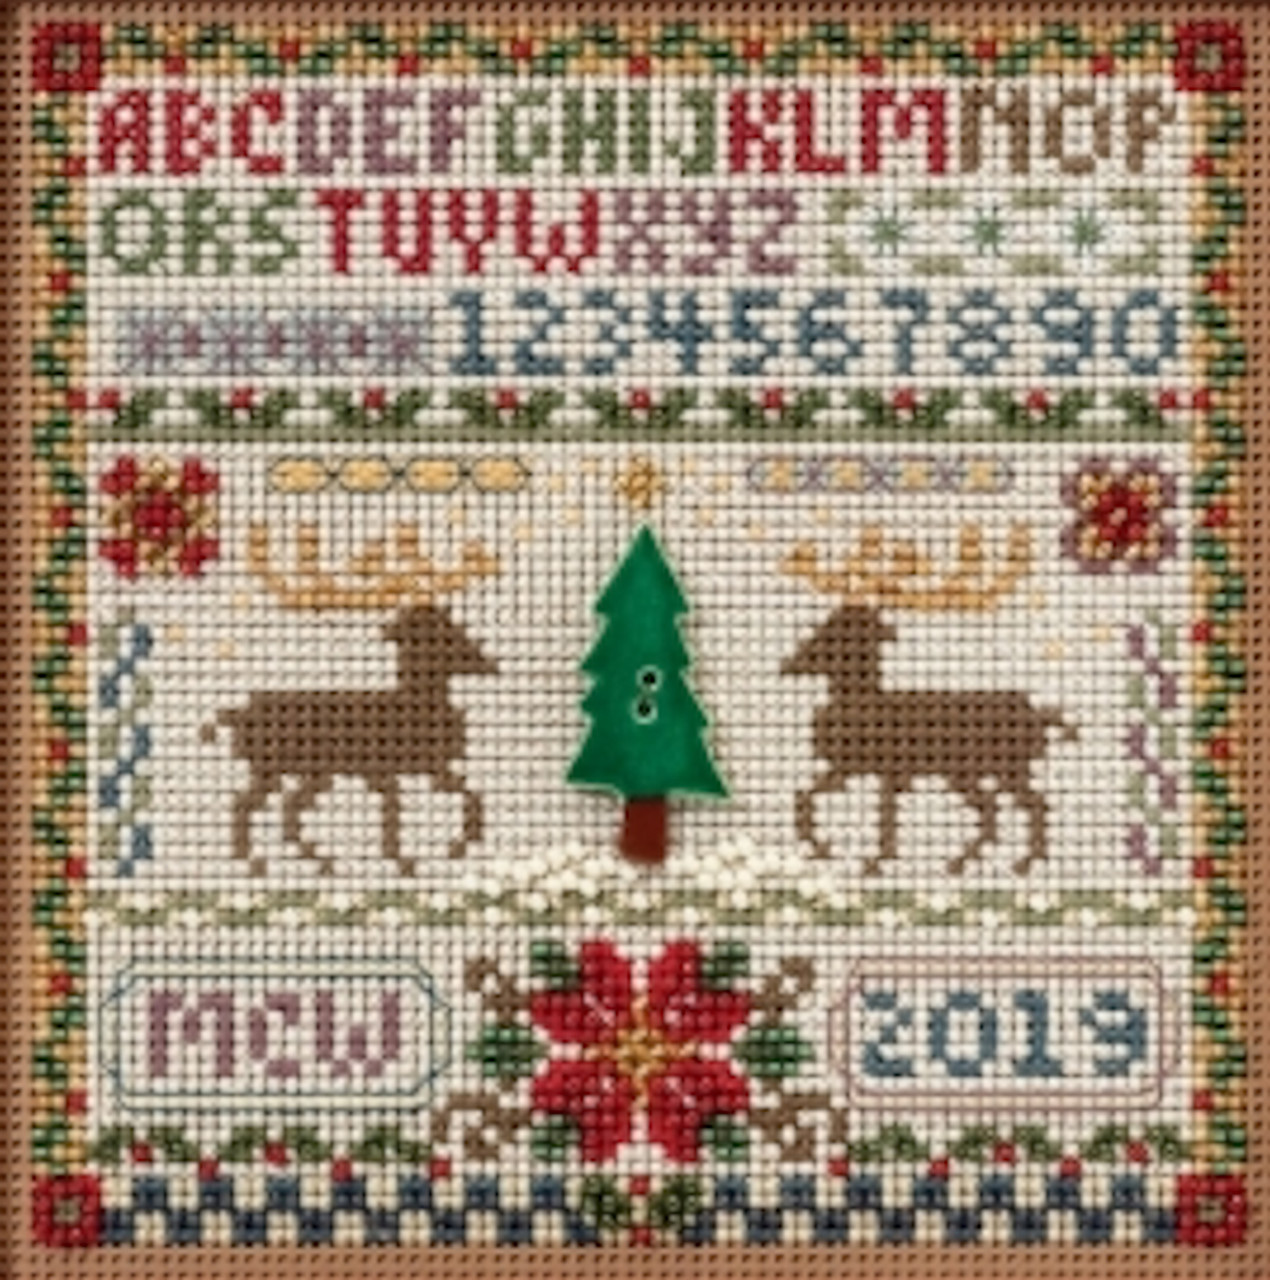 MILL HILL Buttons /& Beads Counted Cross Stitch Kit MH14-1633 HOLIDAY SAMPLER